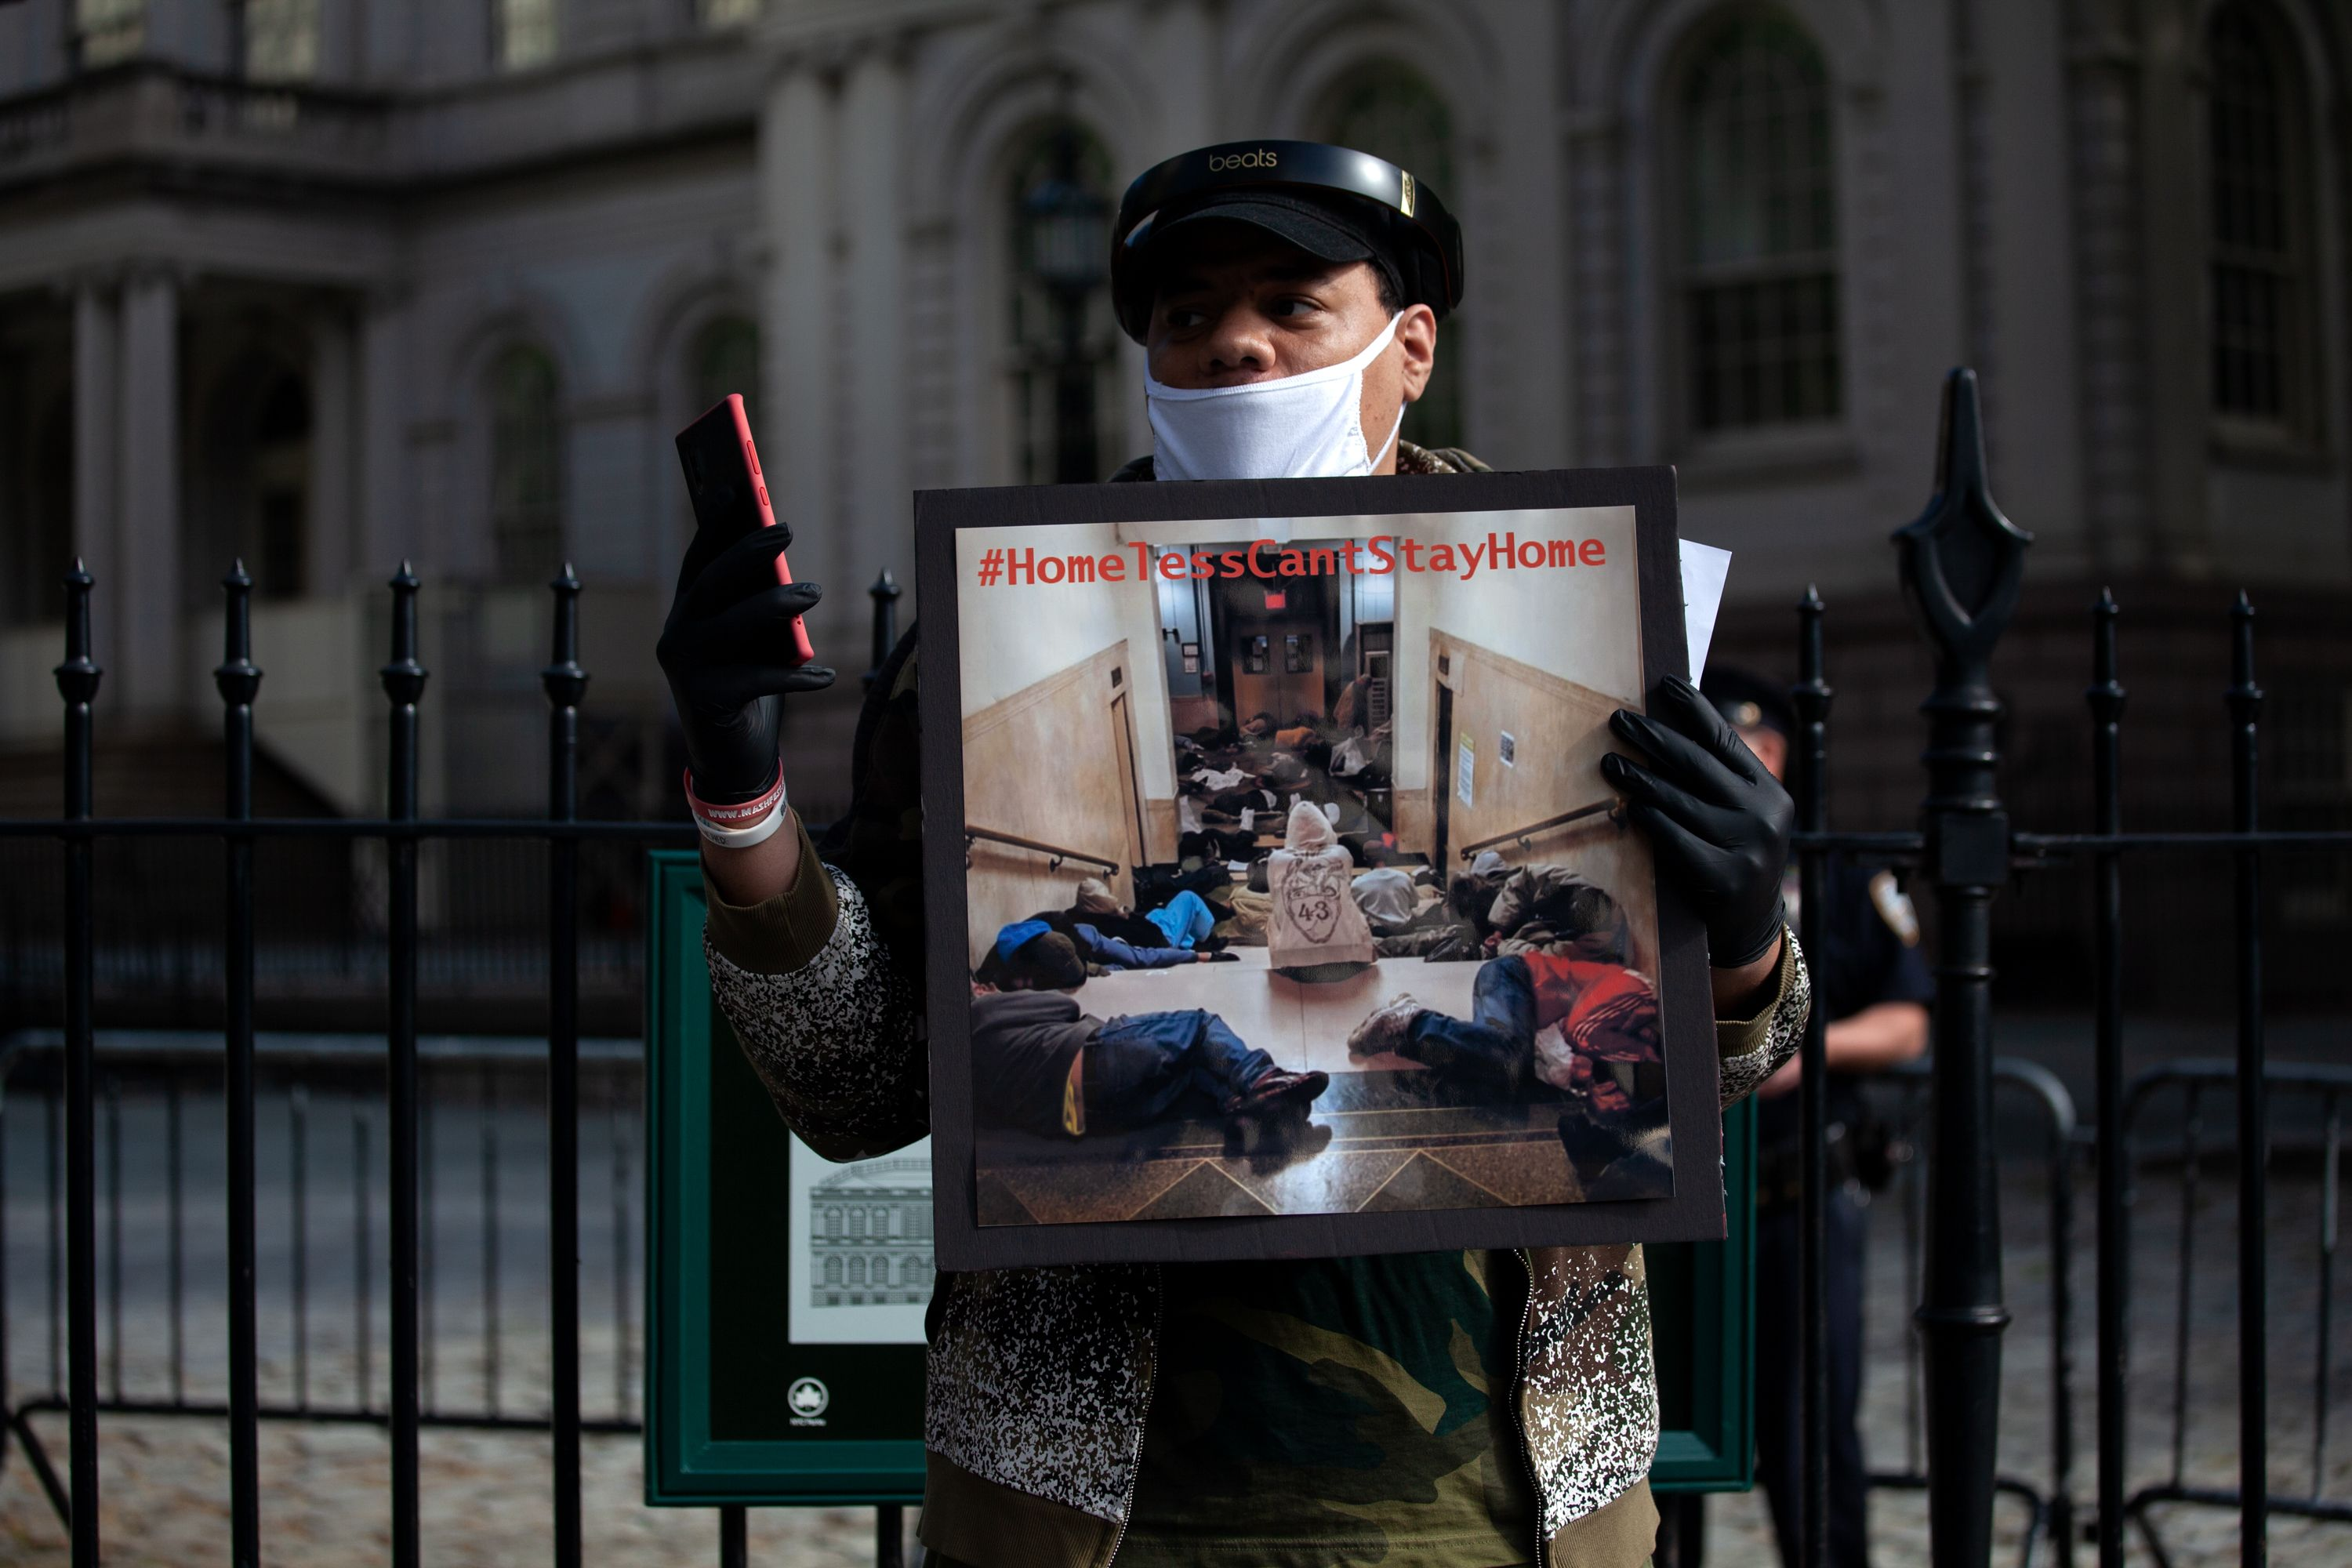 Homeless people and advocates protest at City Hall Mayor Bill de Blasio's treatment of the undomiciled during the coronavirus outbreak, May 27, 2020.